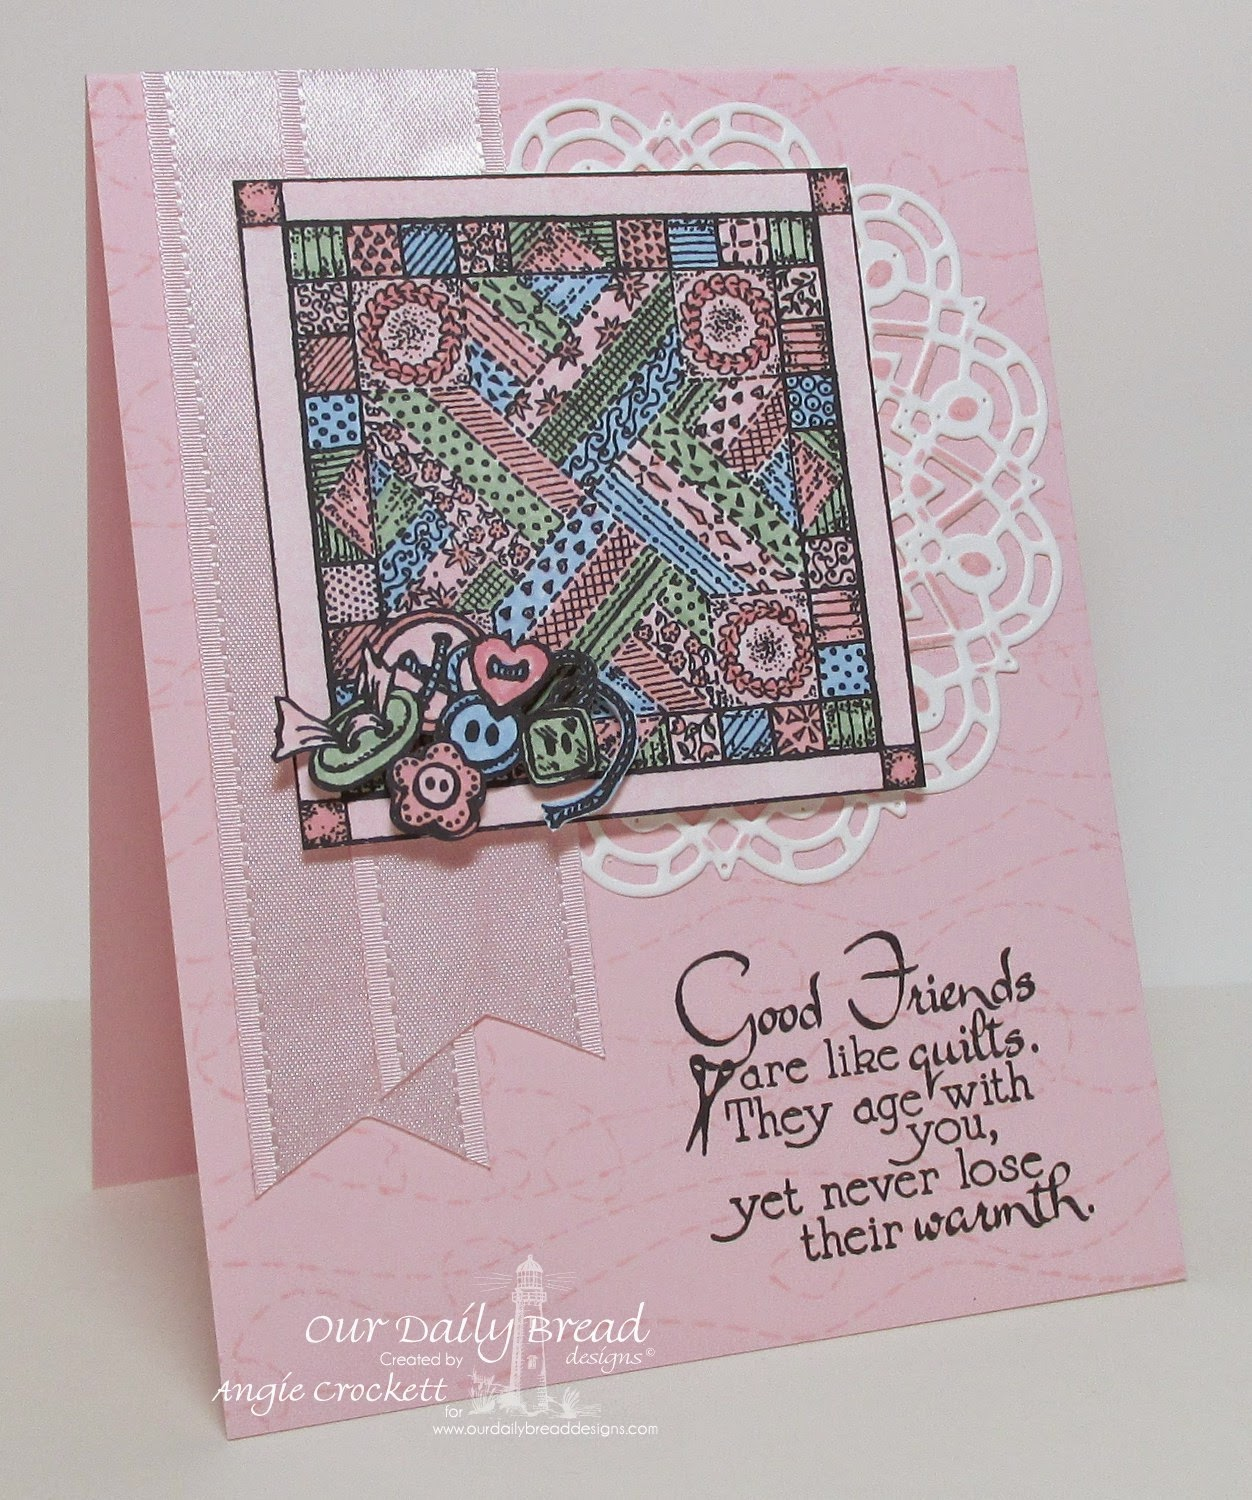 ODBD Quilts and Stitched Background, ODBD Custom Doily Dies, Card Designer Angie Crockett